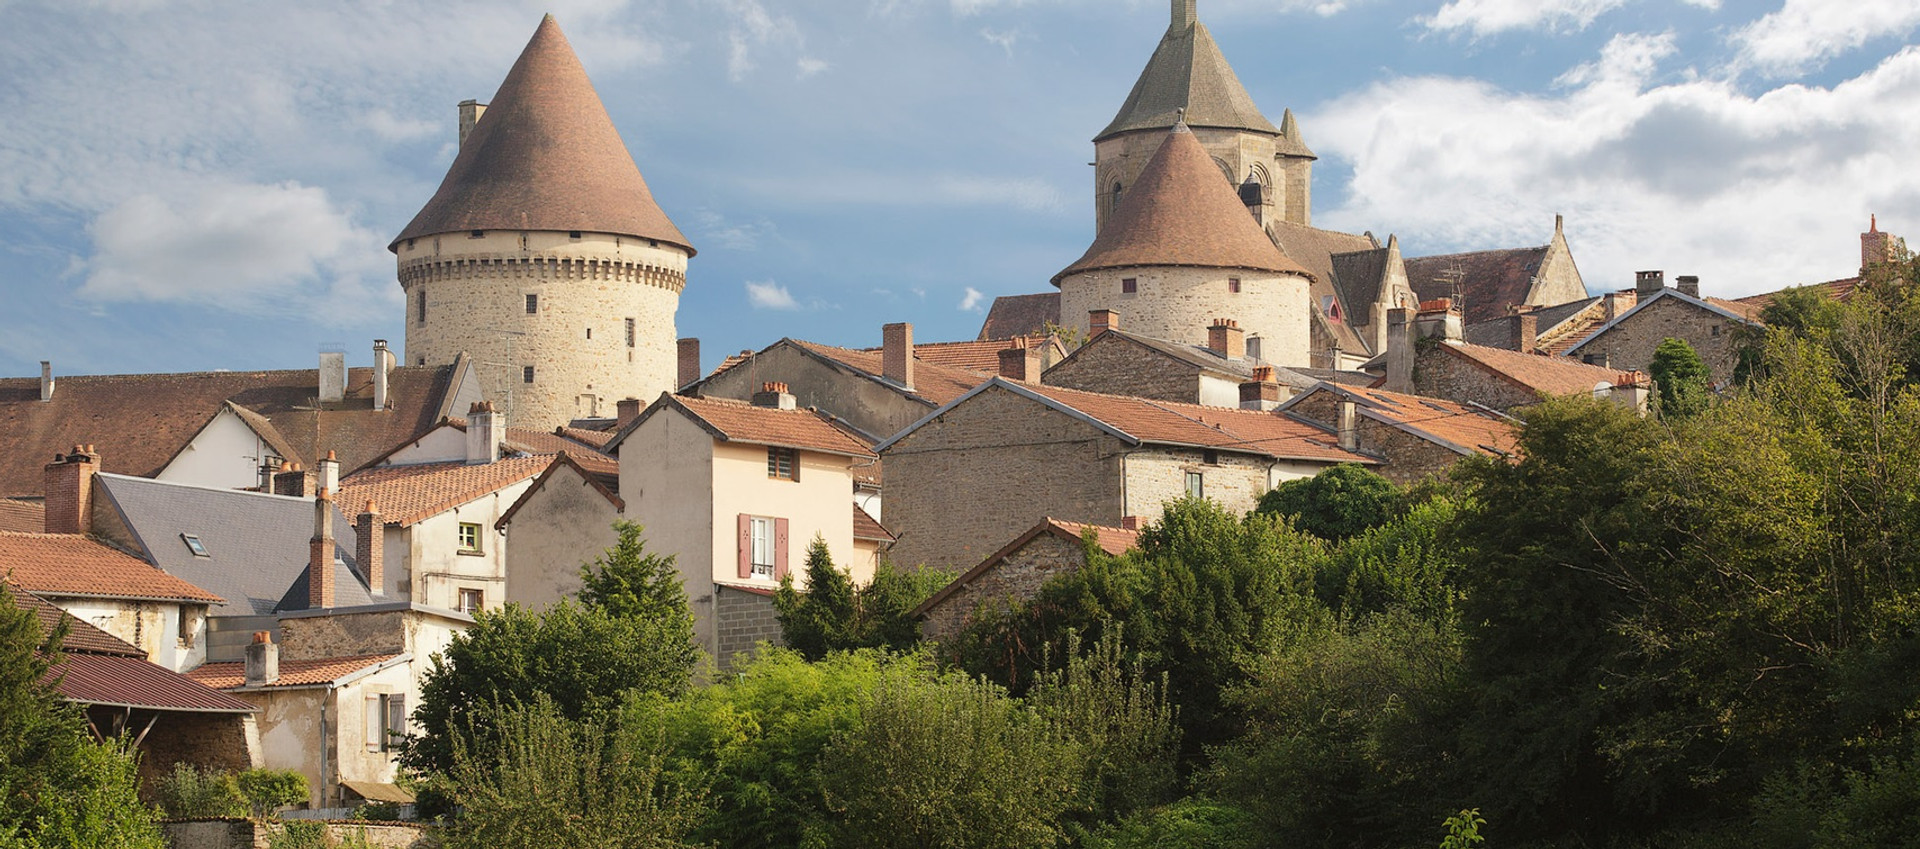 VISIT THE PICTURESQUE TOWNS